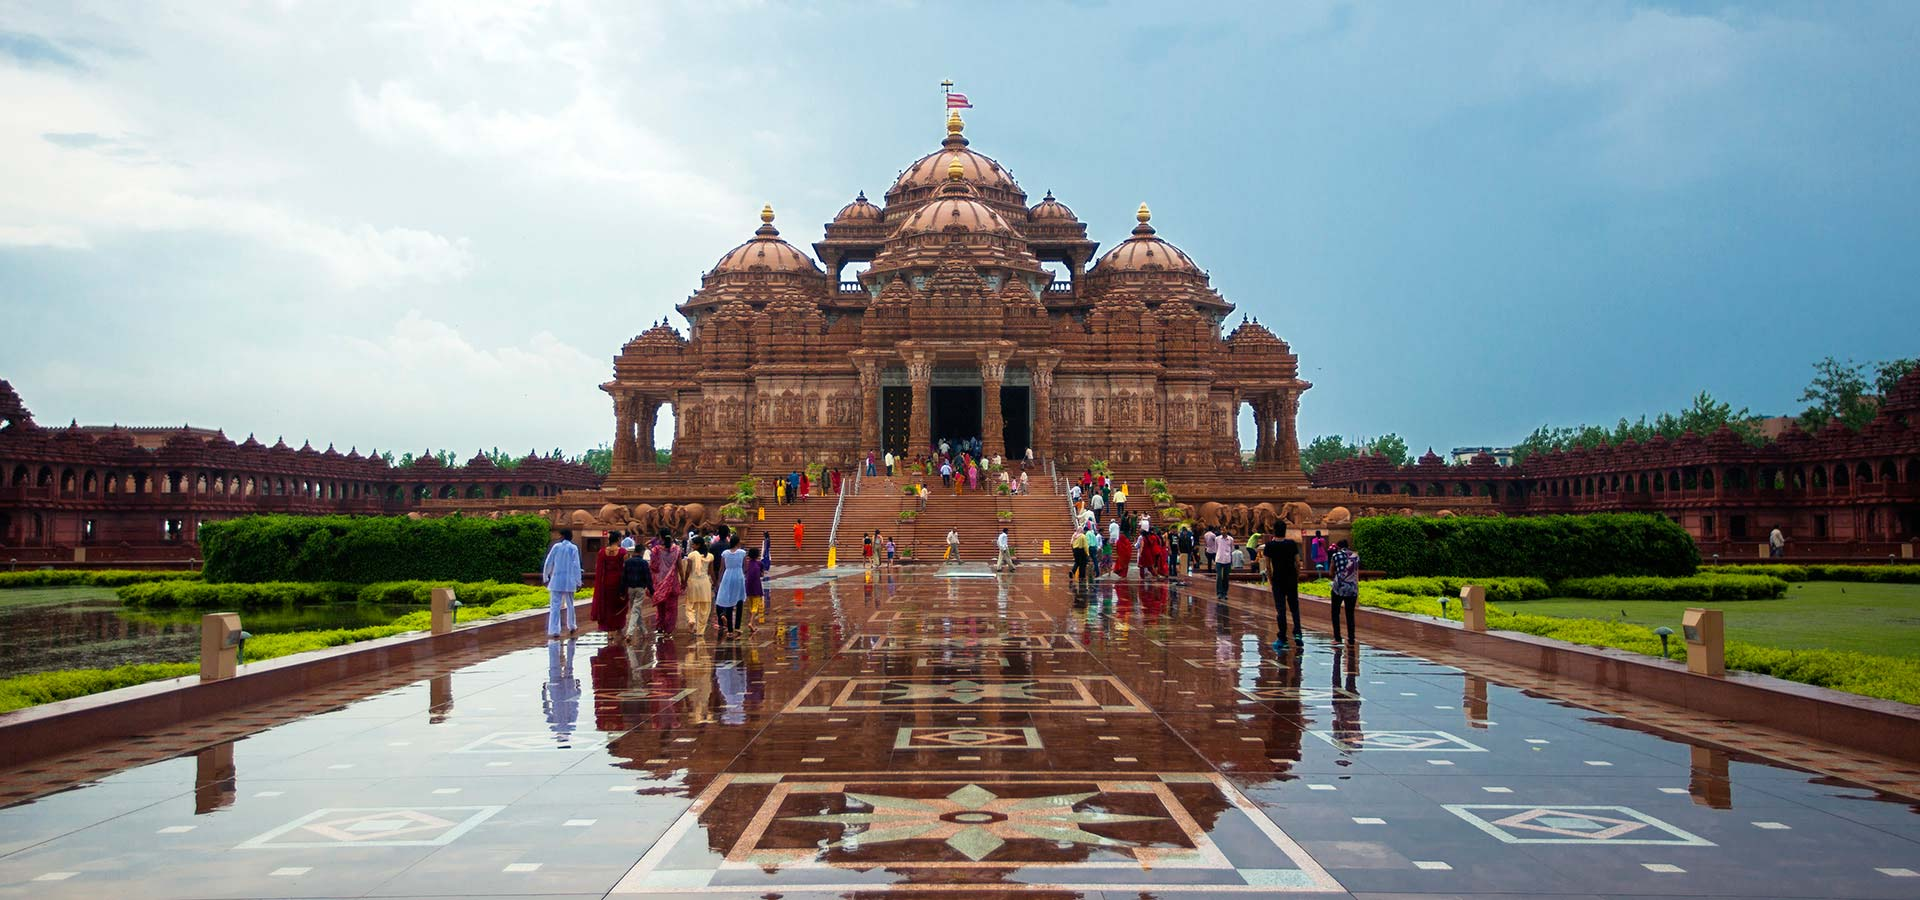 Swaminarayan Akshardham Temple in New Delhi